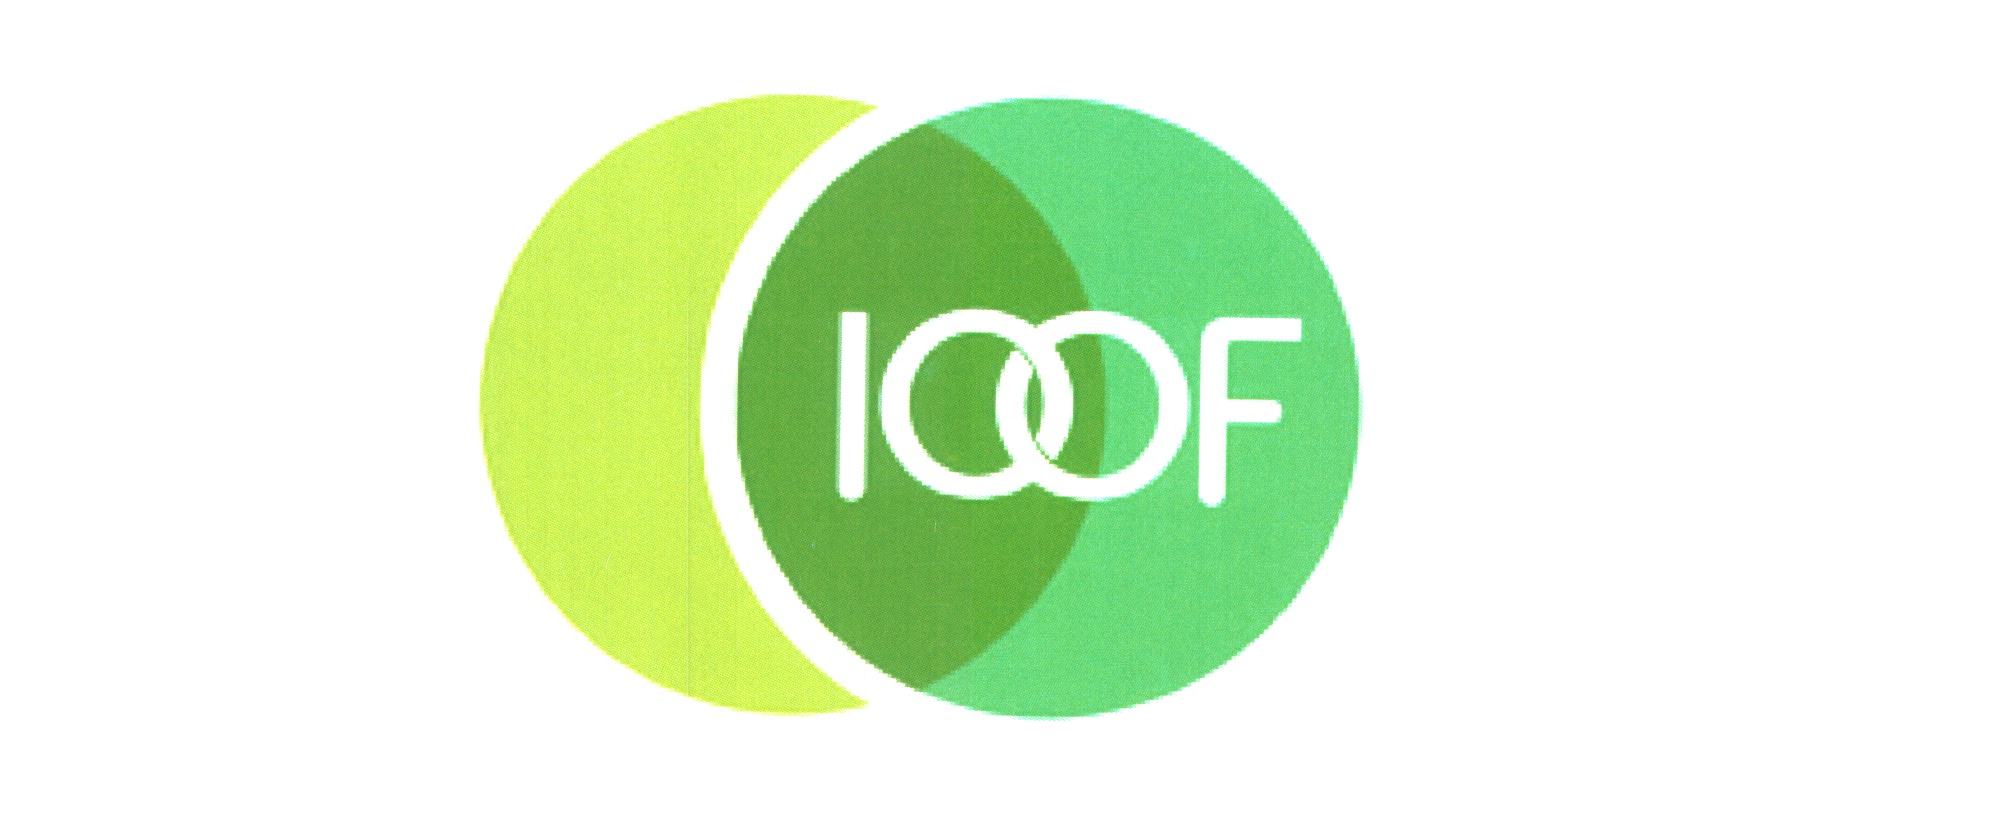 IOOF Holdings Limited logo